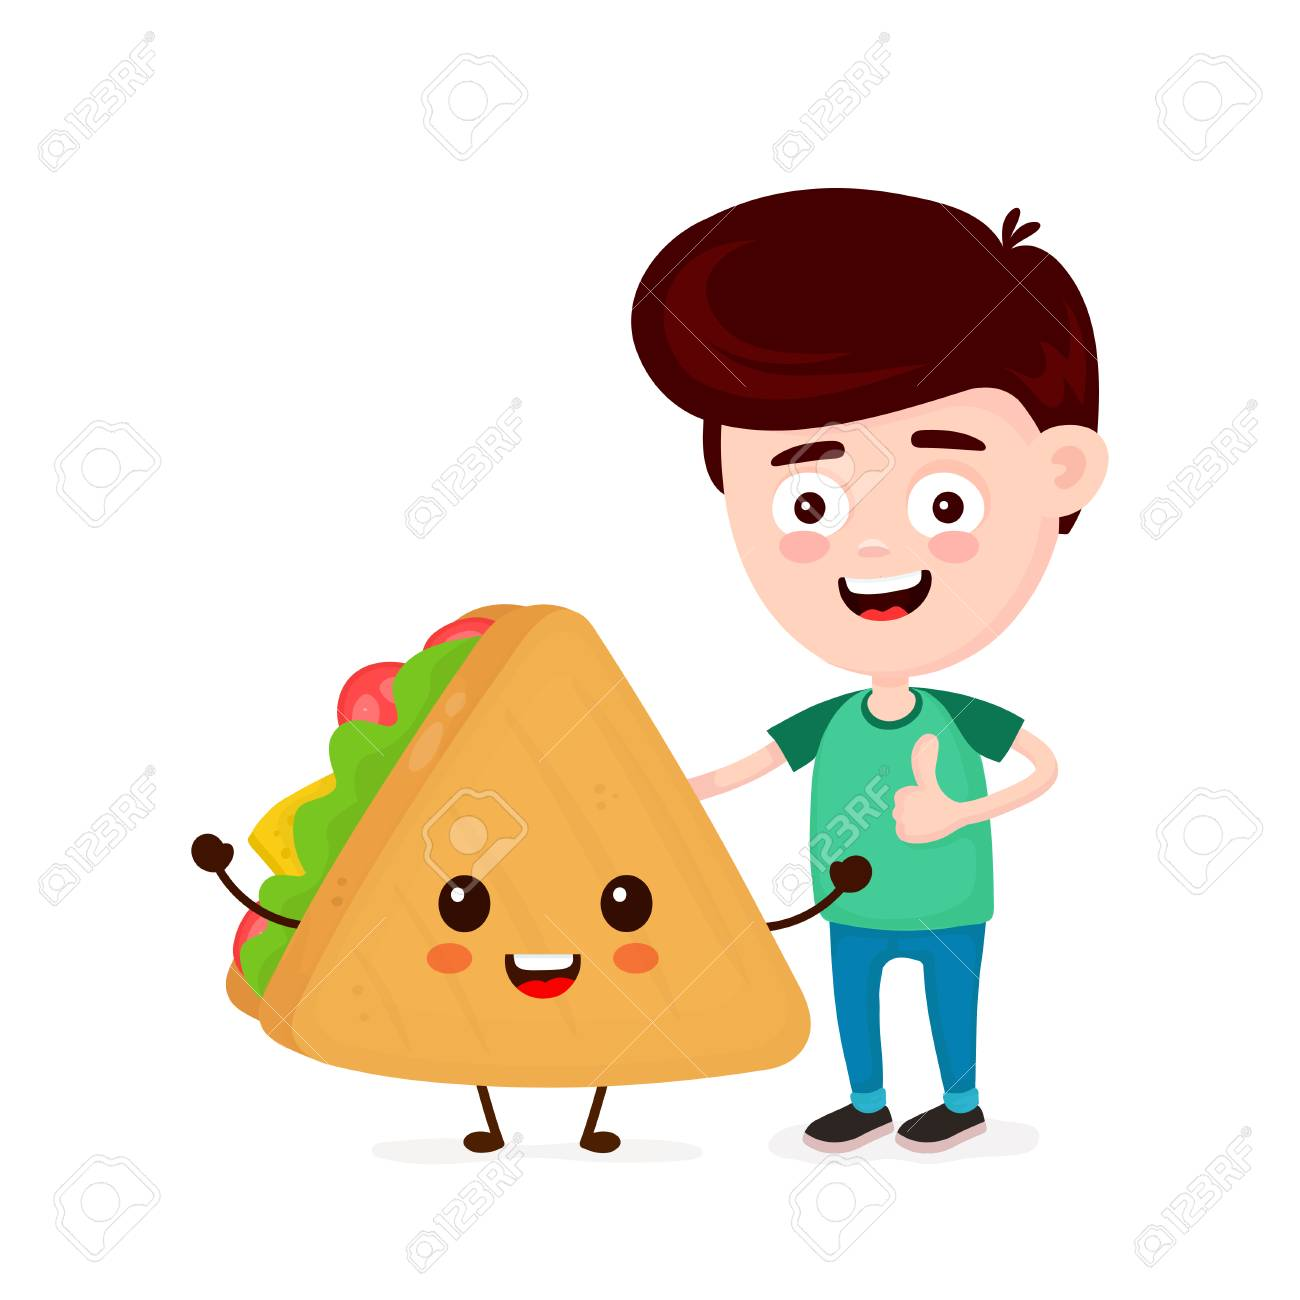 cute happy funny smiling young man and sandwich boy show thumb royalty free cliparts vectors and stock illustration image 127103351 cute happy funny smiling young man and sandwich boy show thumb